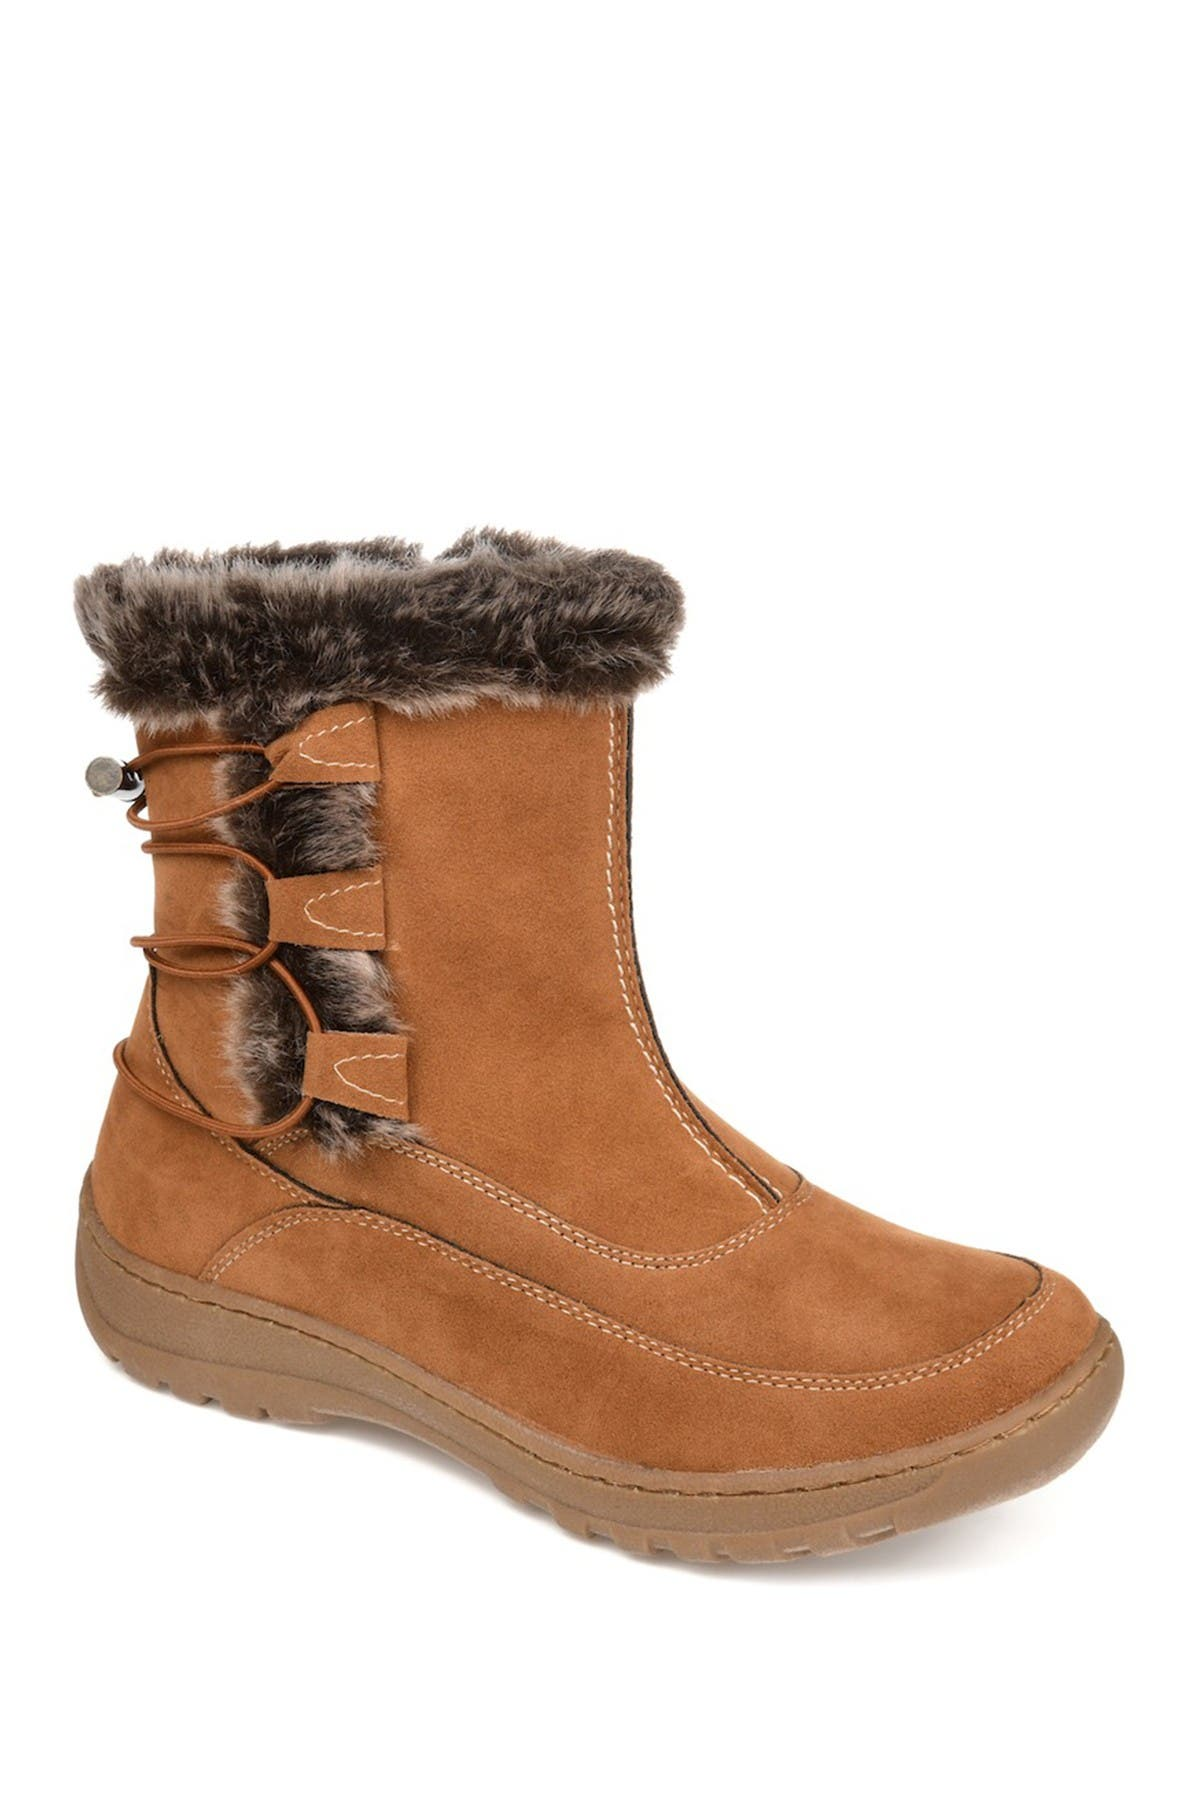 Image of JOURNEE Collection Wasilla Faux Fur Lined Boot